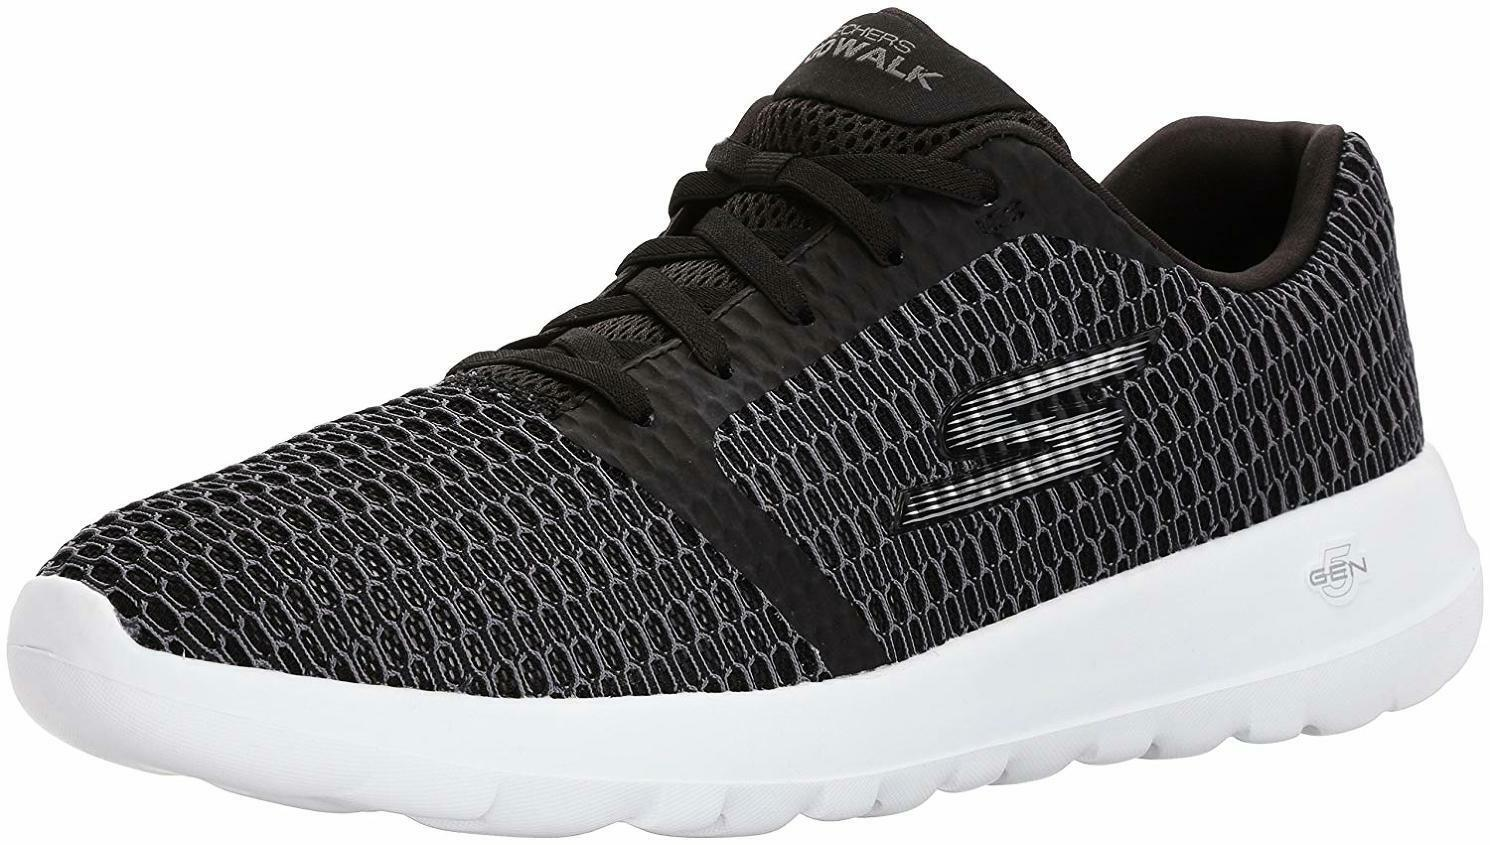 Skechers Men's Go Walk Max-54606 Sneaker - Choose SZ color